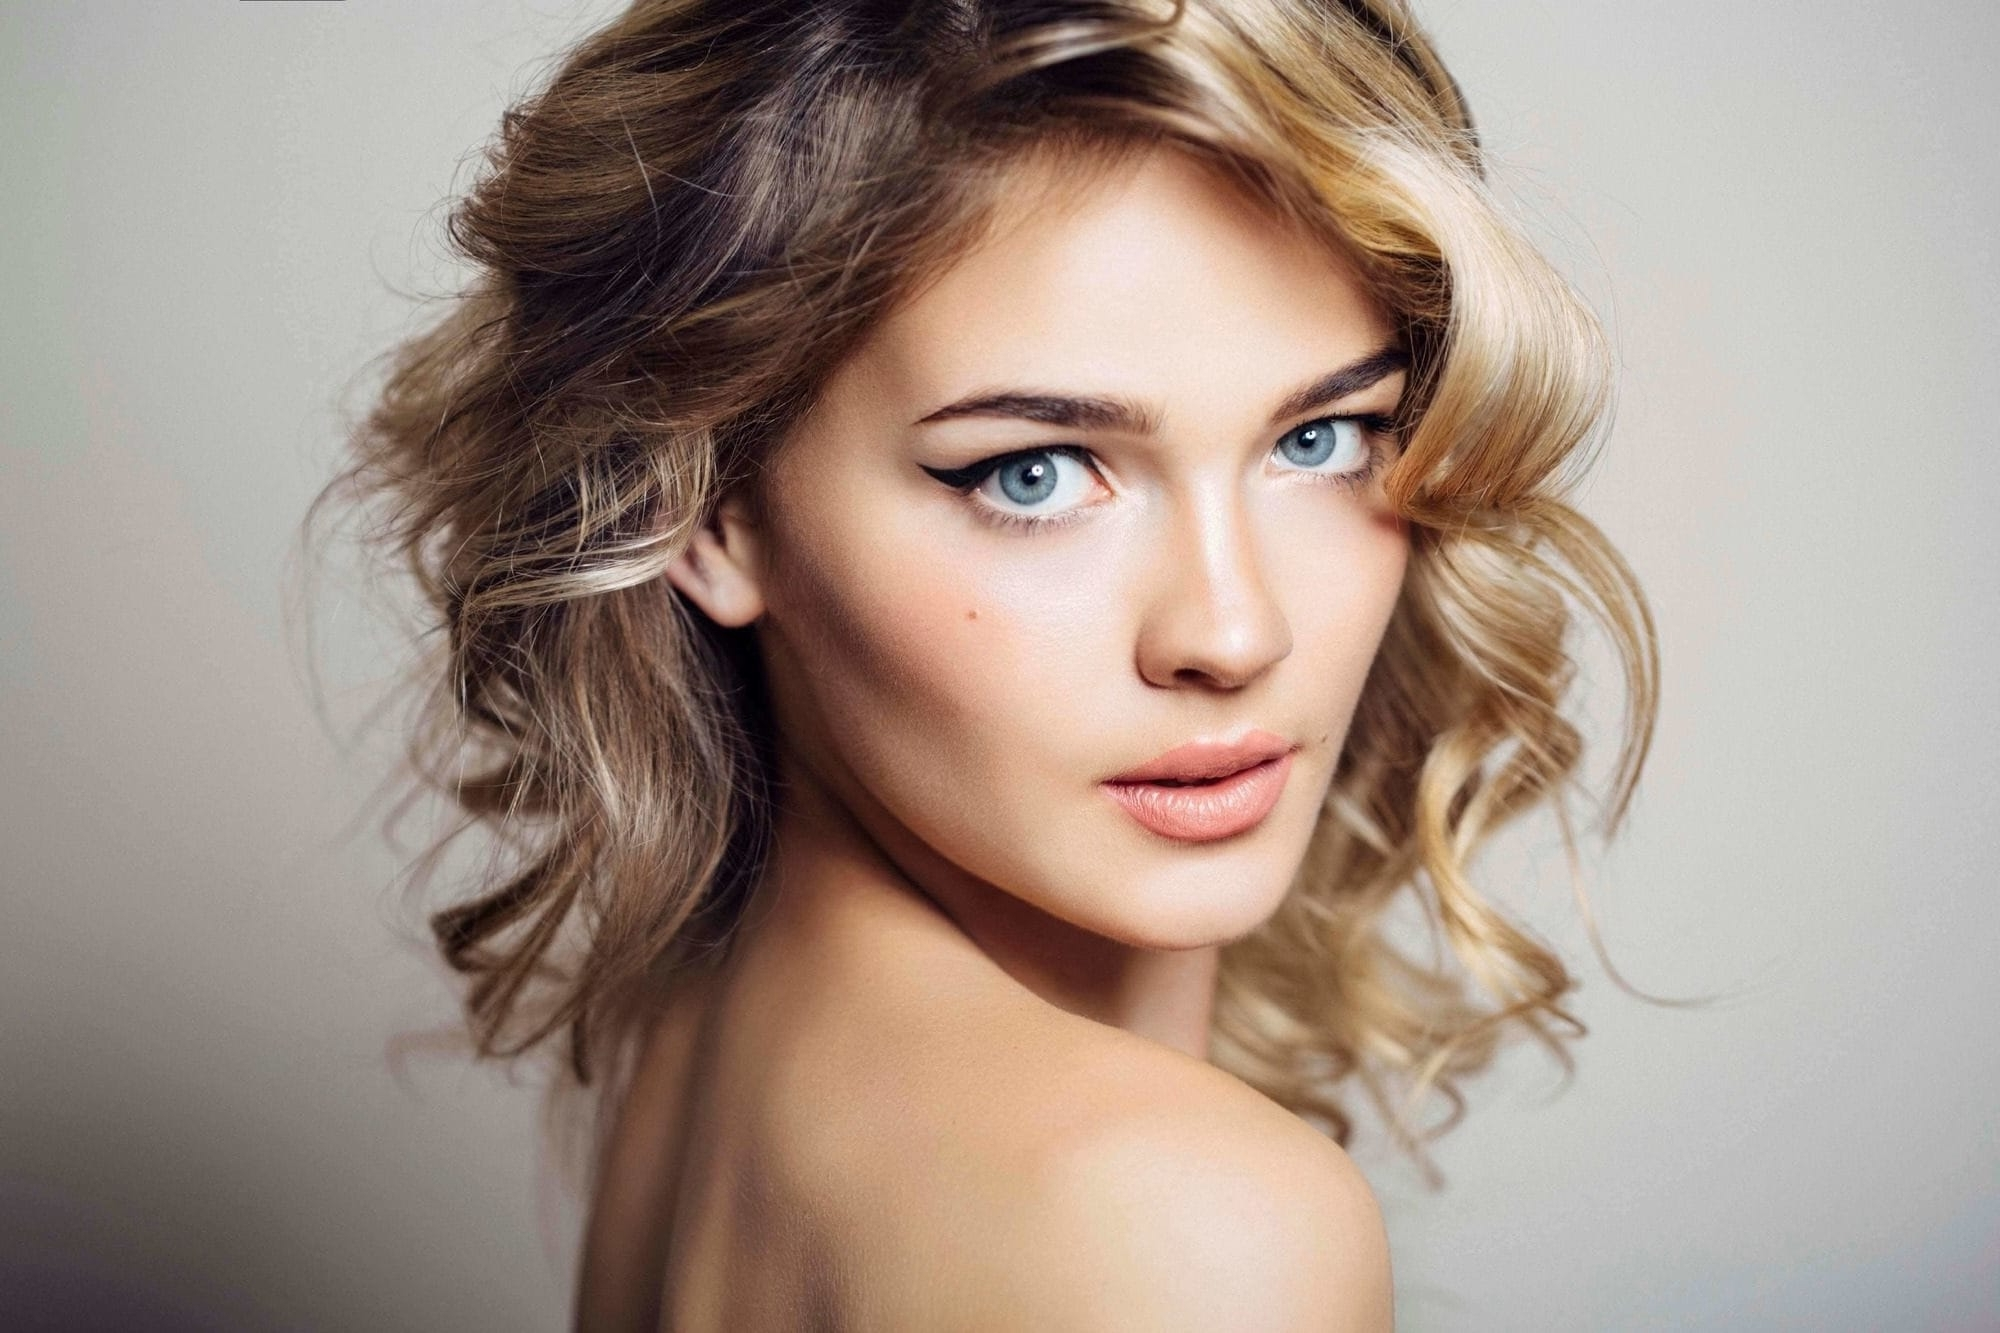 Famous Dark Roots Blonde Hairstyles With Honey Highlights Intended For Blonde Hair With Dark Roots: Stylish Ways To Wear This Hair Trend (View 12 of 20)